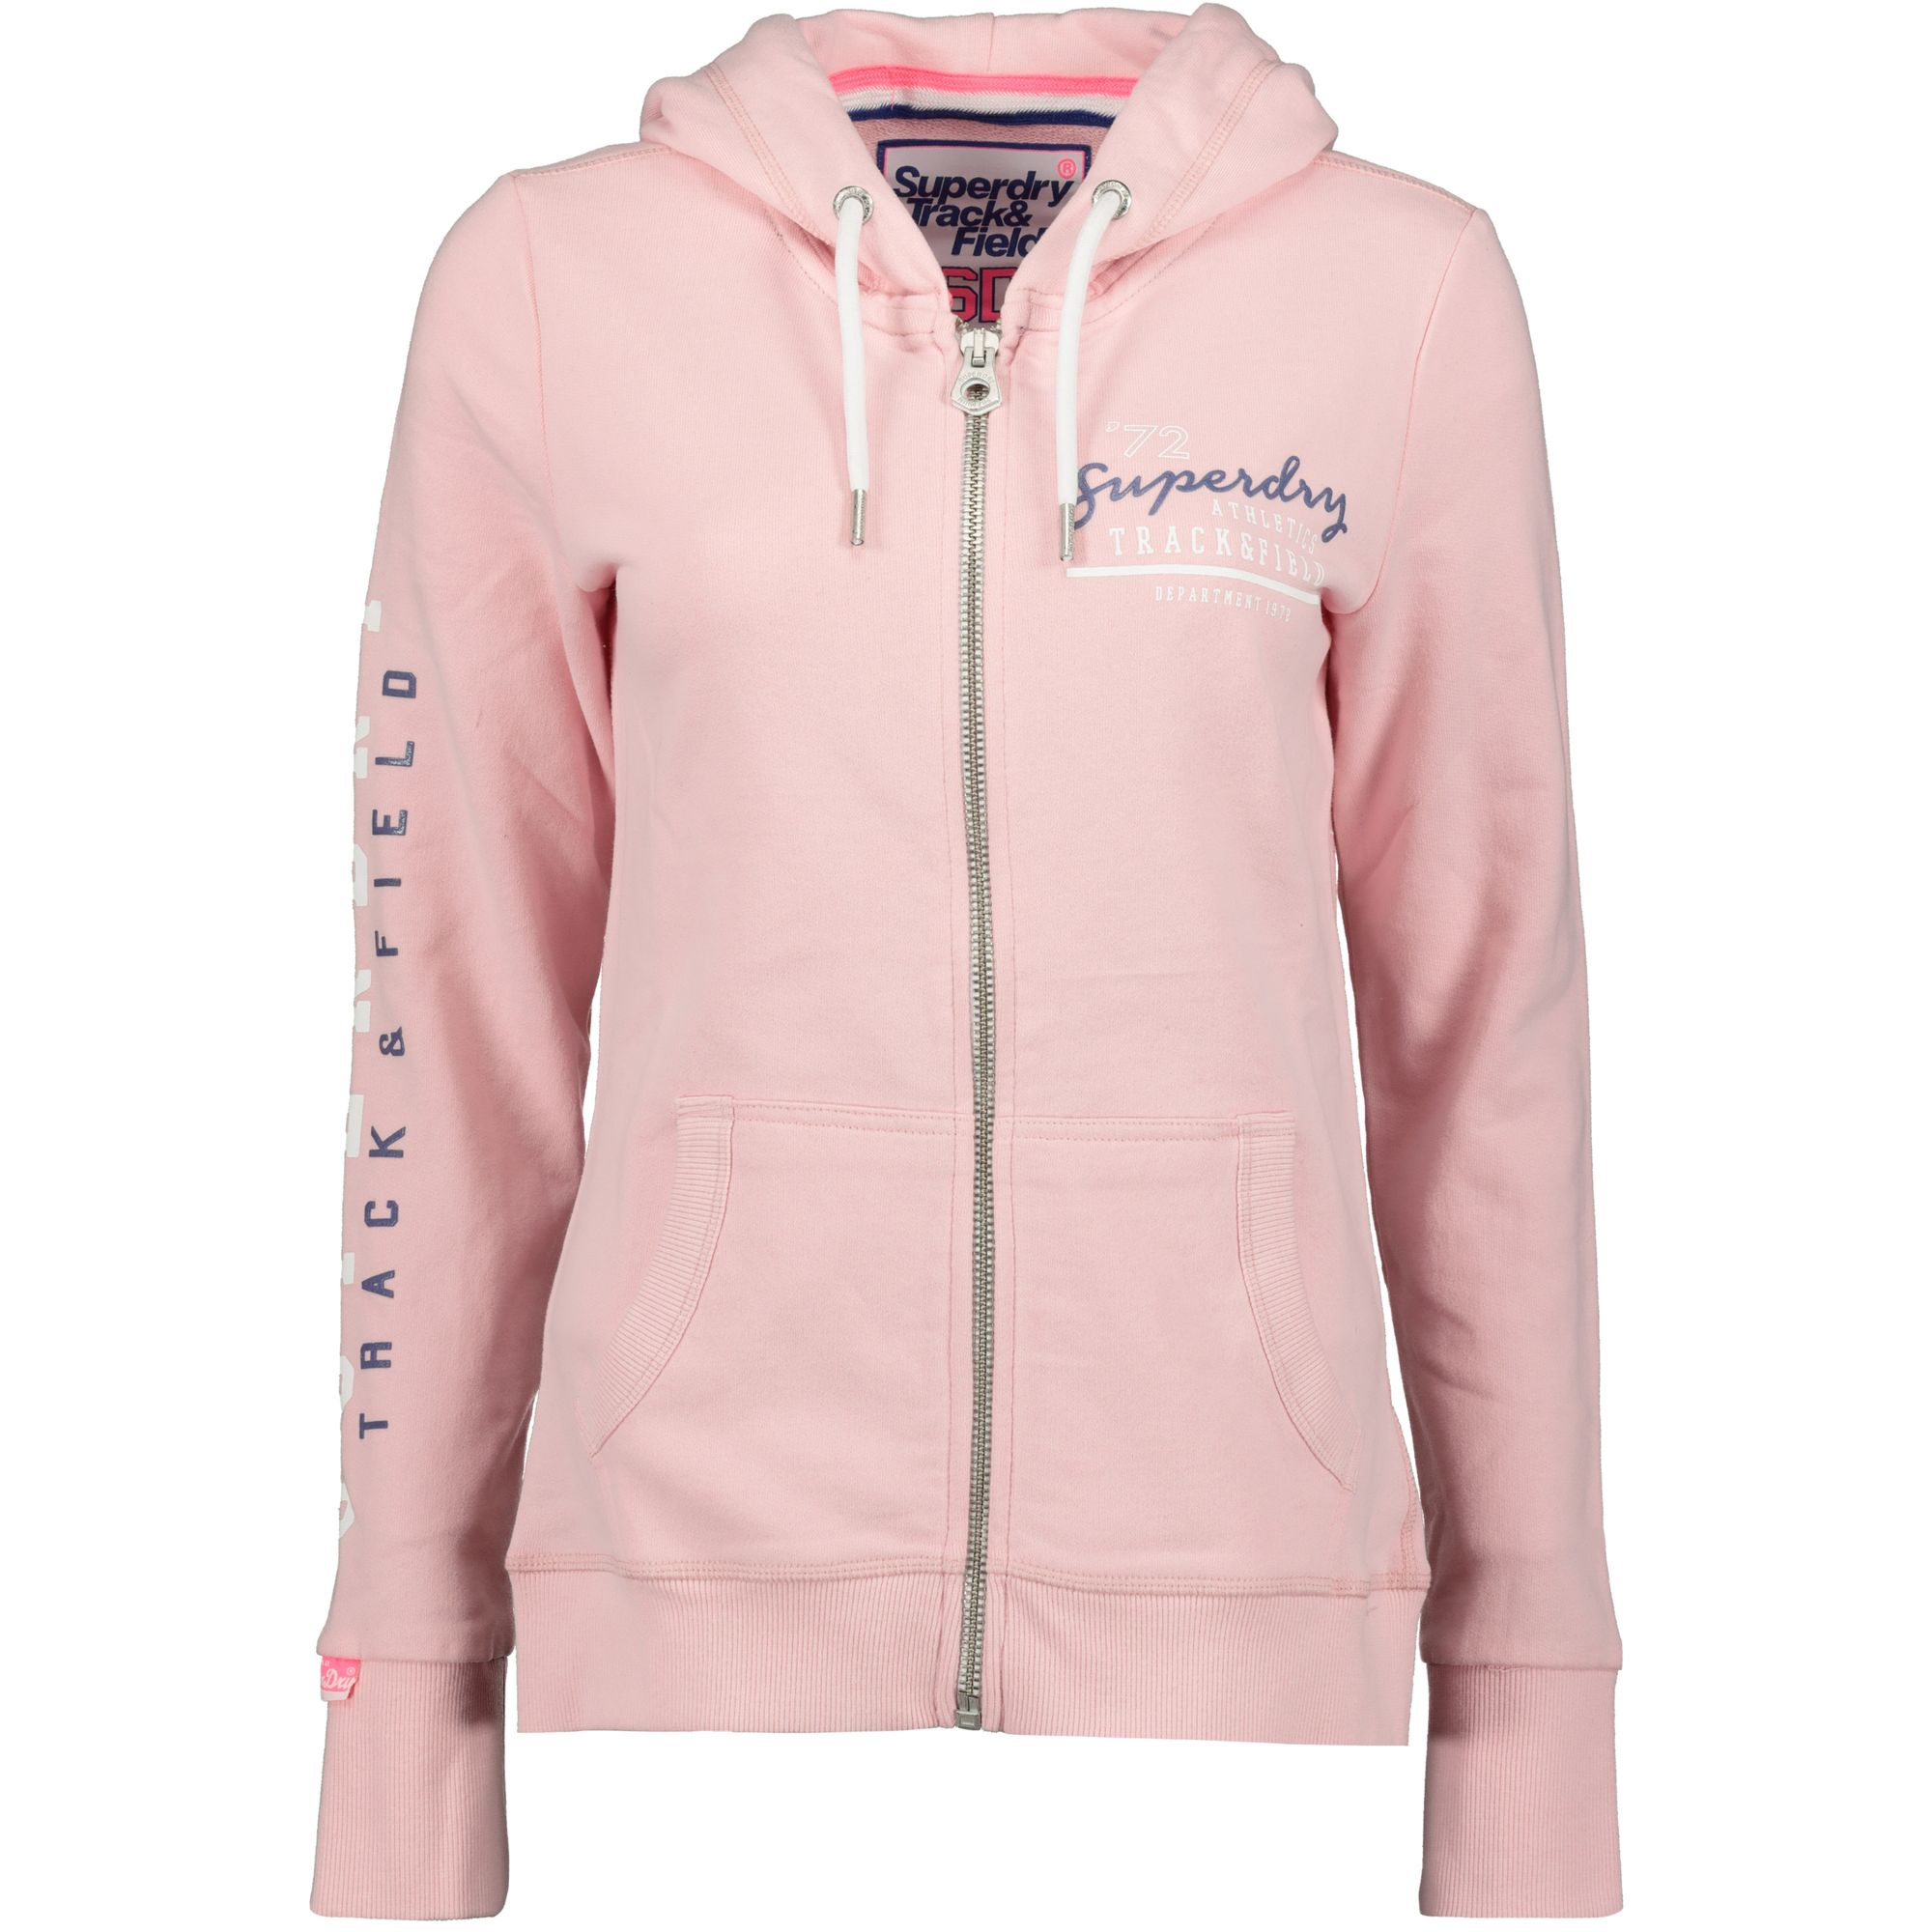 sports shoes 0c622 47f7a Details zu Superdry Track and Field Lite Ziphood Sweatjacke Damen fade pink